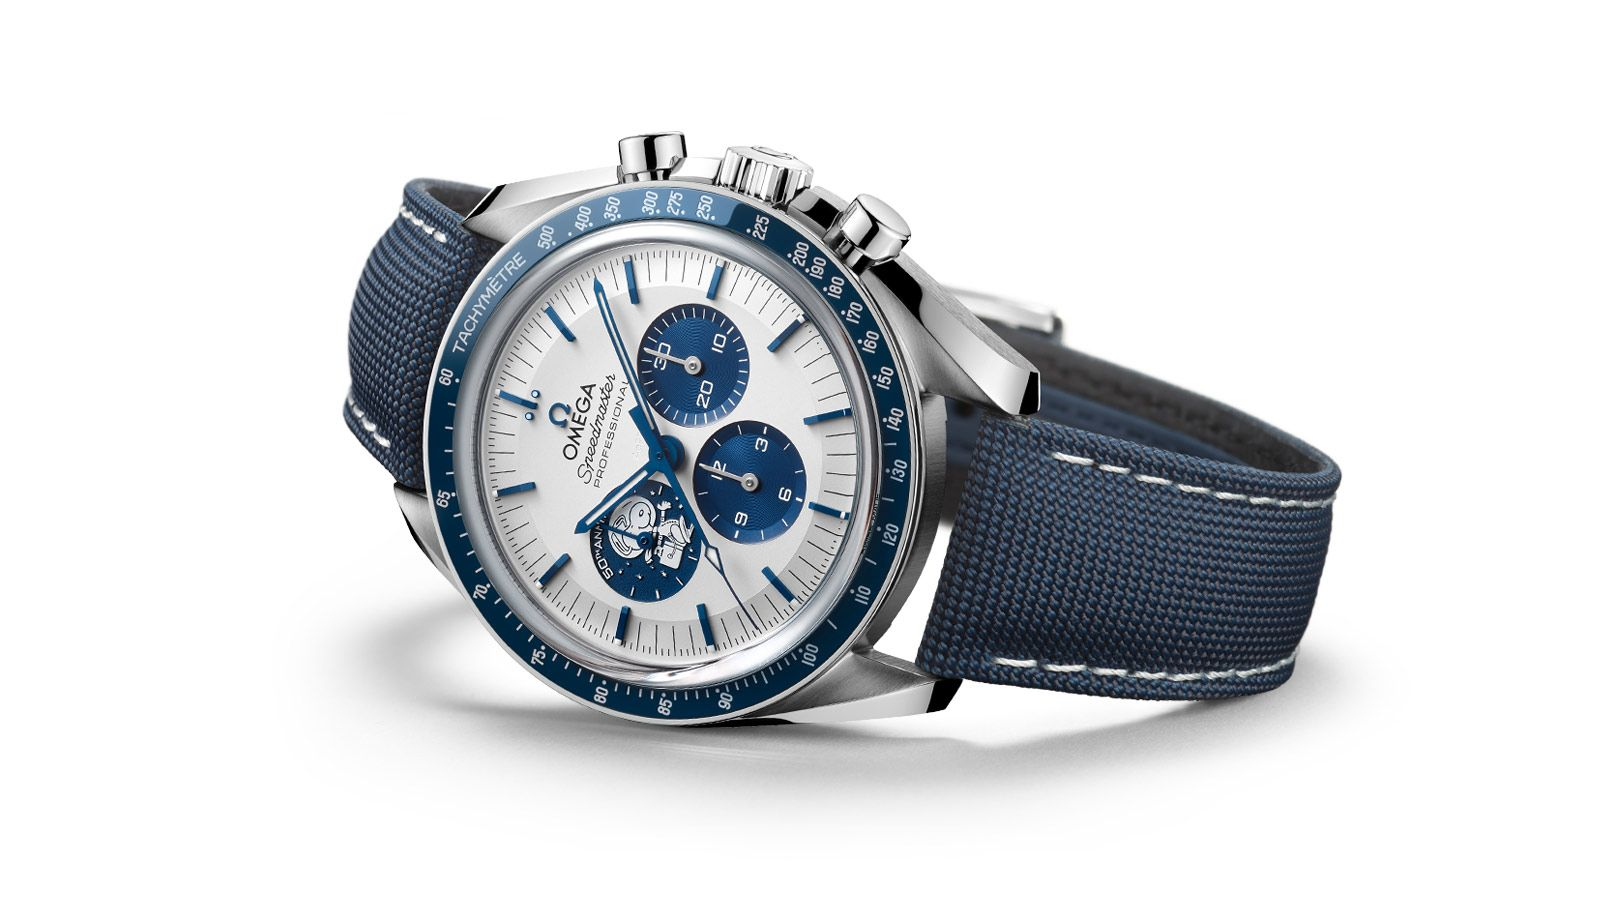 """Jewels & Time 2020: Omega Celebrates the Speedmaster """"Silver Snoopy Award"""" 50th Anniversary With a Special Creation"""